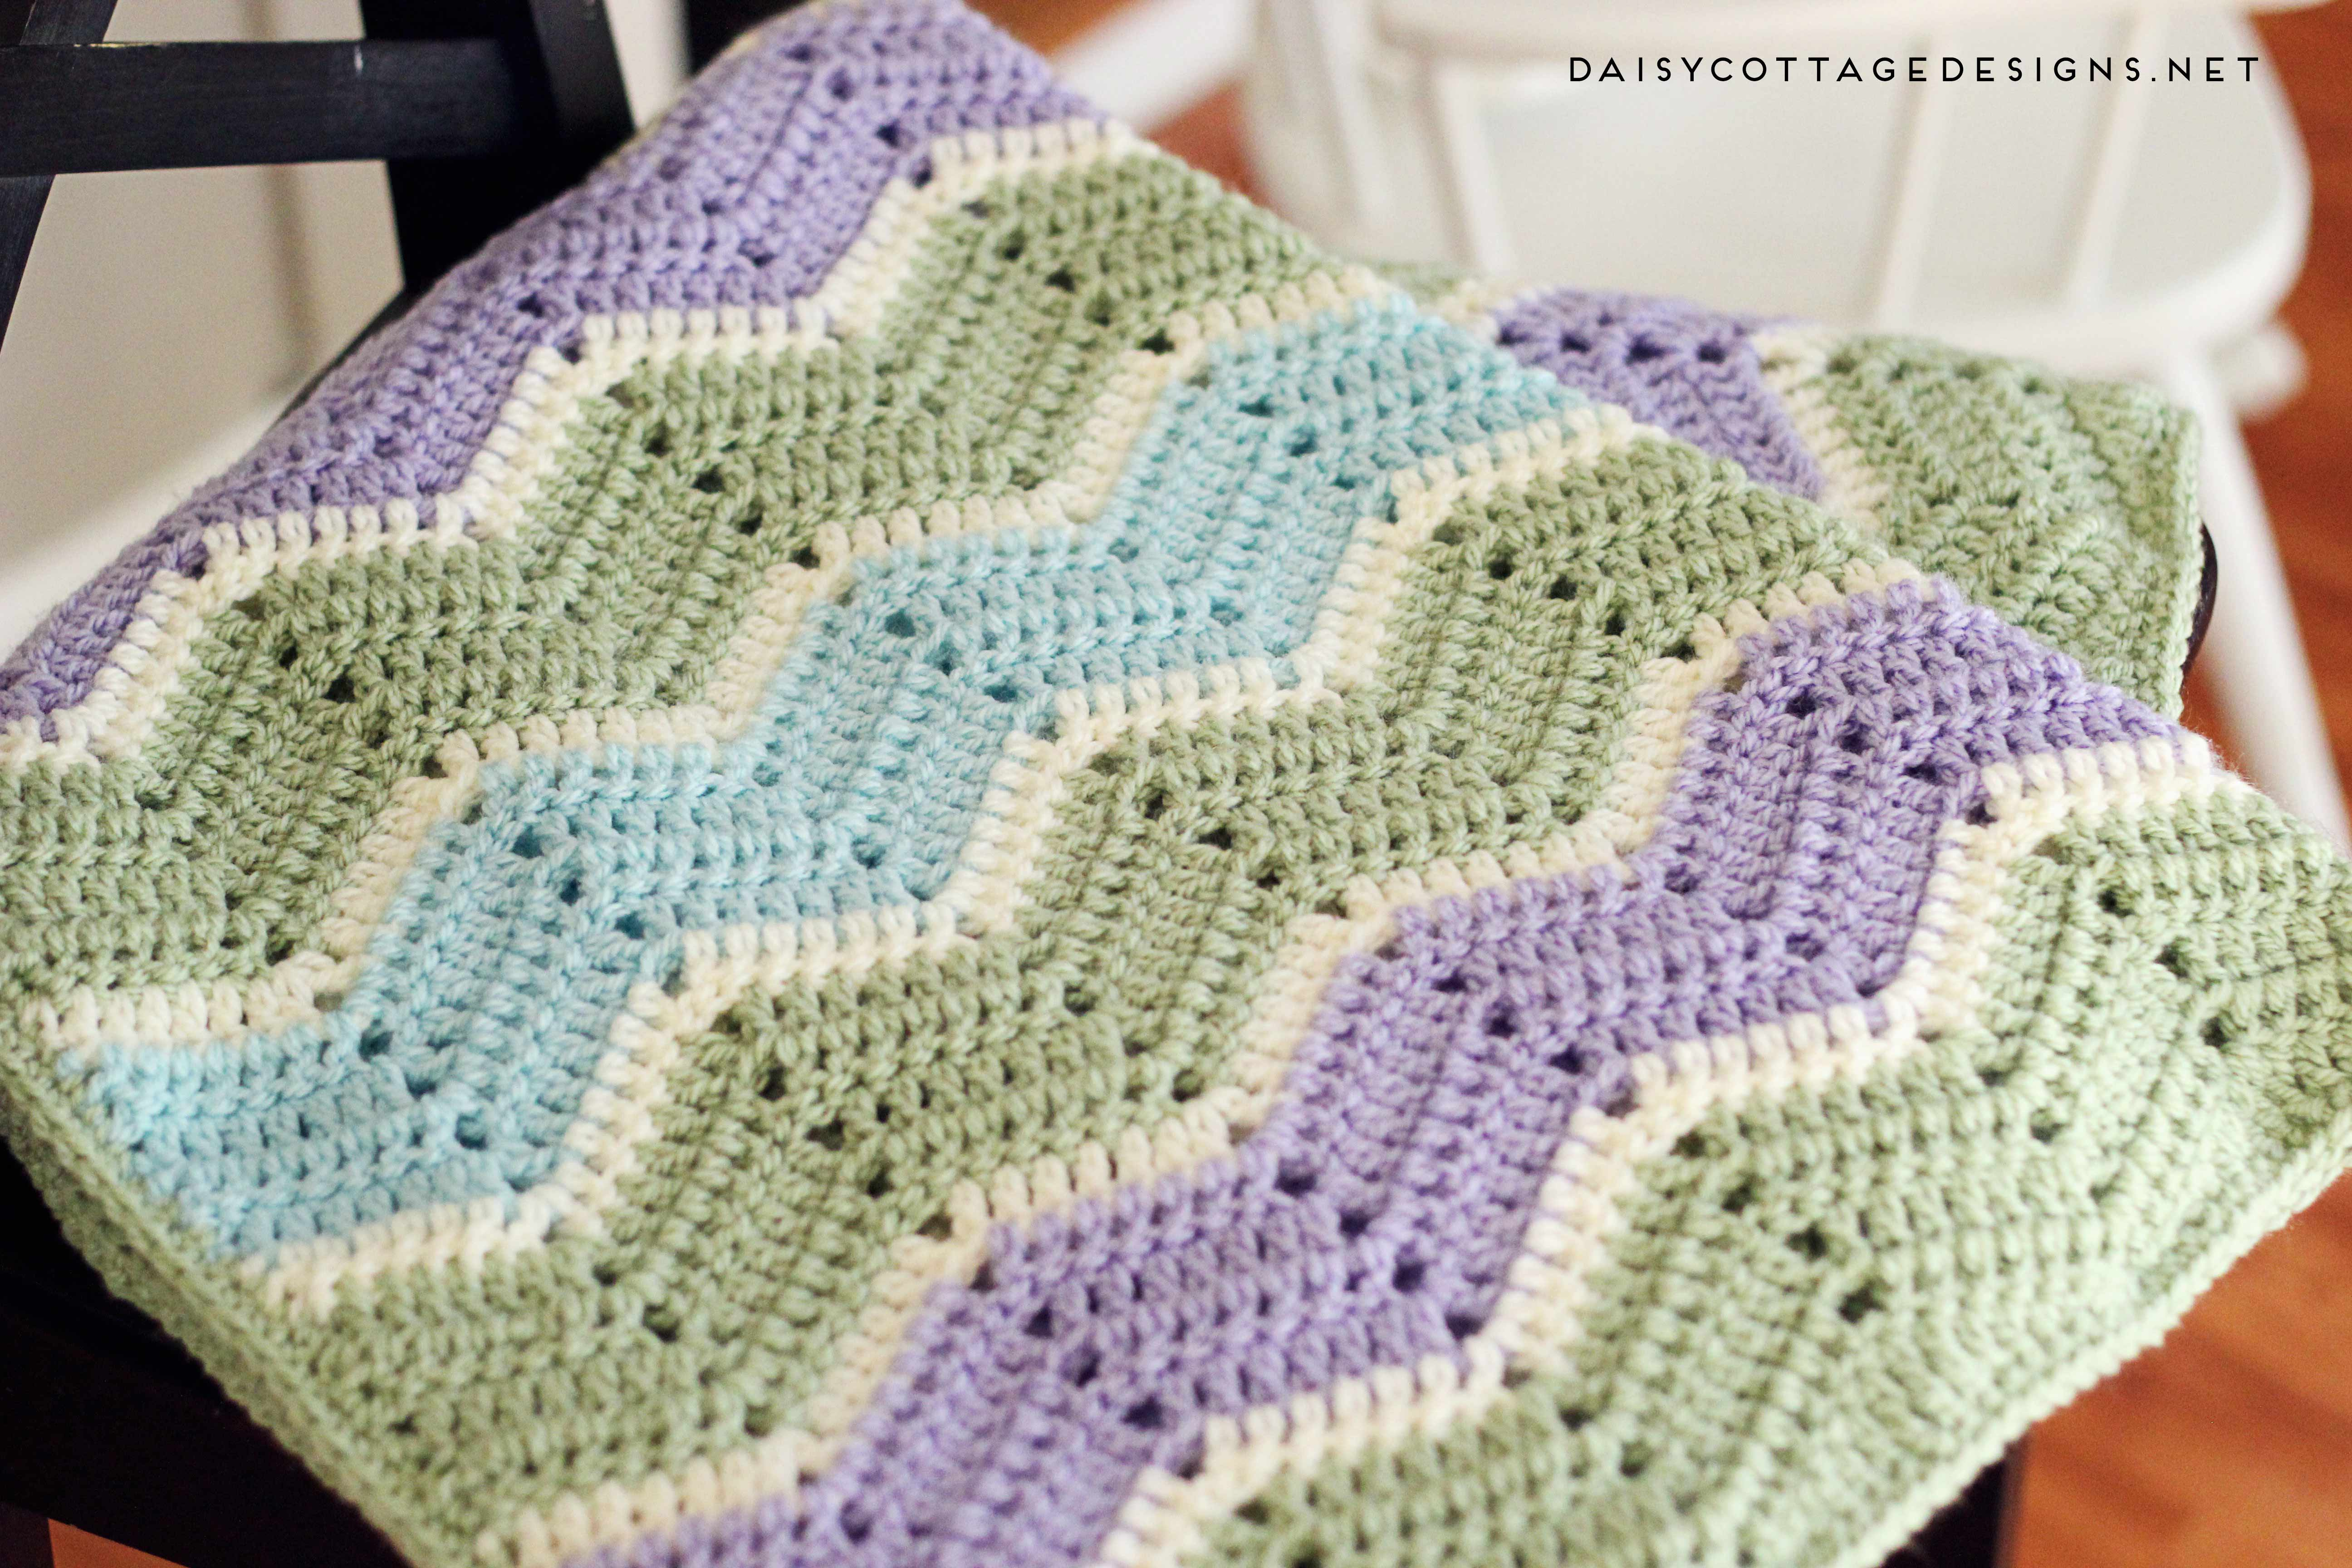 crochet patterns use this chevron blanket crochet pattern from daisy cottage designs to  create katsbjx